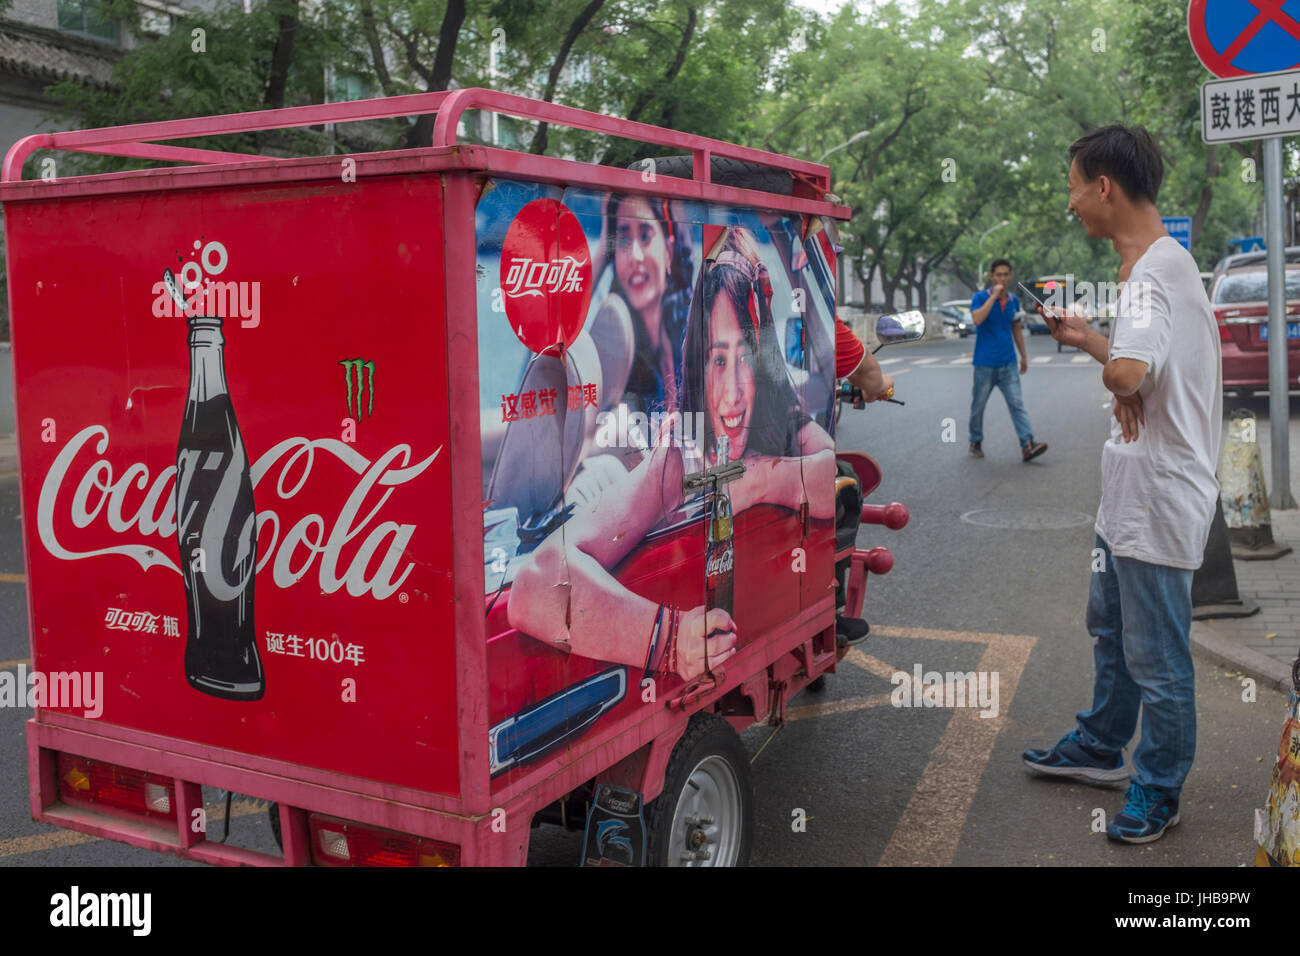 An electric tricycle features Coca-Cola celebrating the 100th birthday of its contour bottle in 2015 with a year - Stock Image